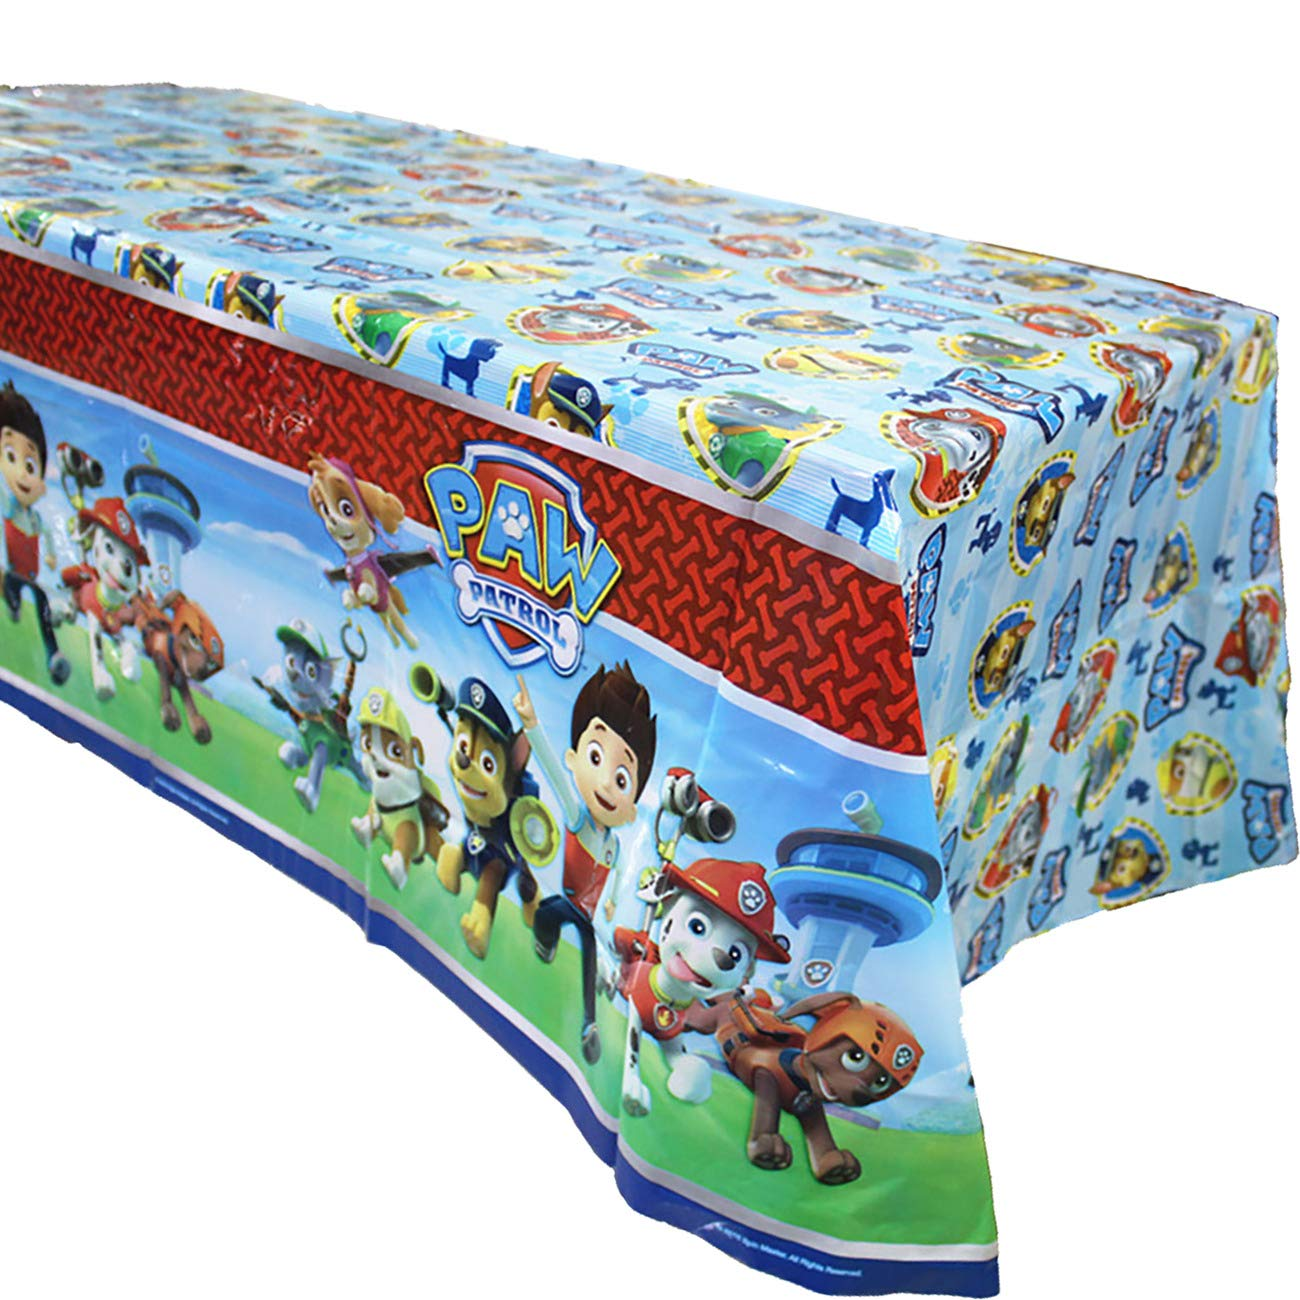 1 pack PAW Dog Patrol Themed Birthday Party Decorations – Disposable PAW Dog Patrol Plastic Tablecloth | 71.25 x51.96 , Disposable Table Cover |Avengers Party Supplies for Kids 71jbf8jCdyL